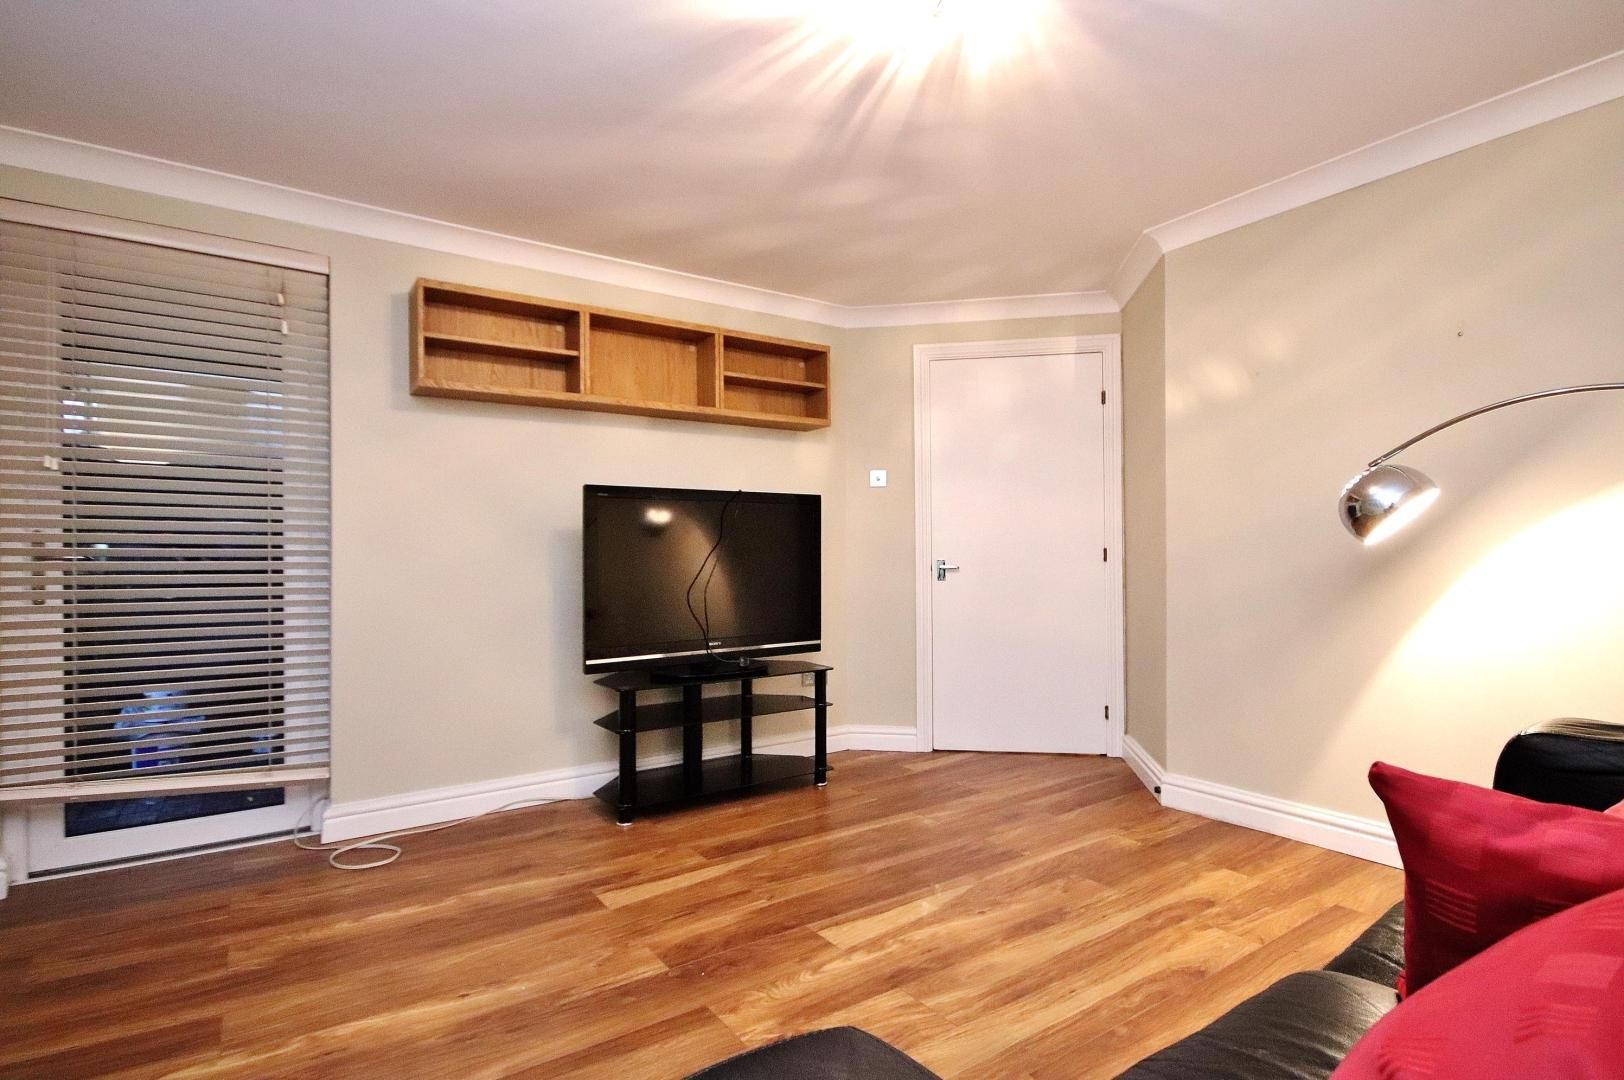 2 bed flat to rent in Thomas Cribb Mews, E6